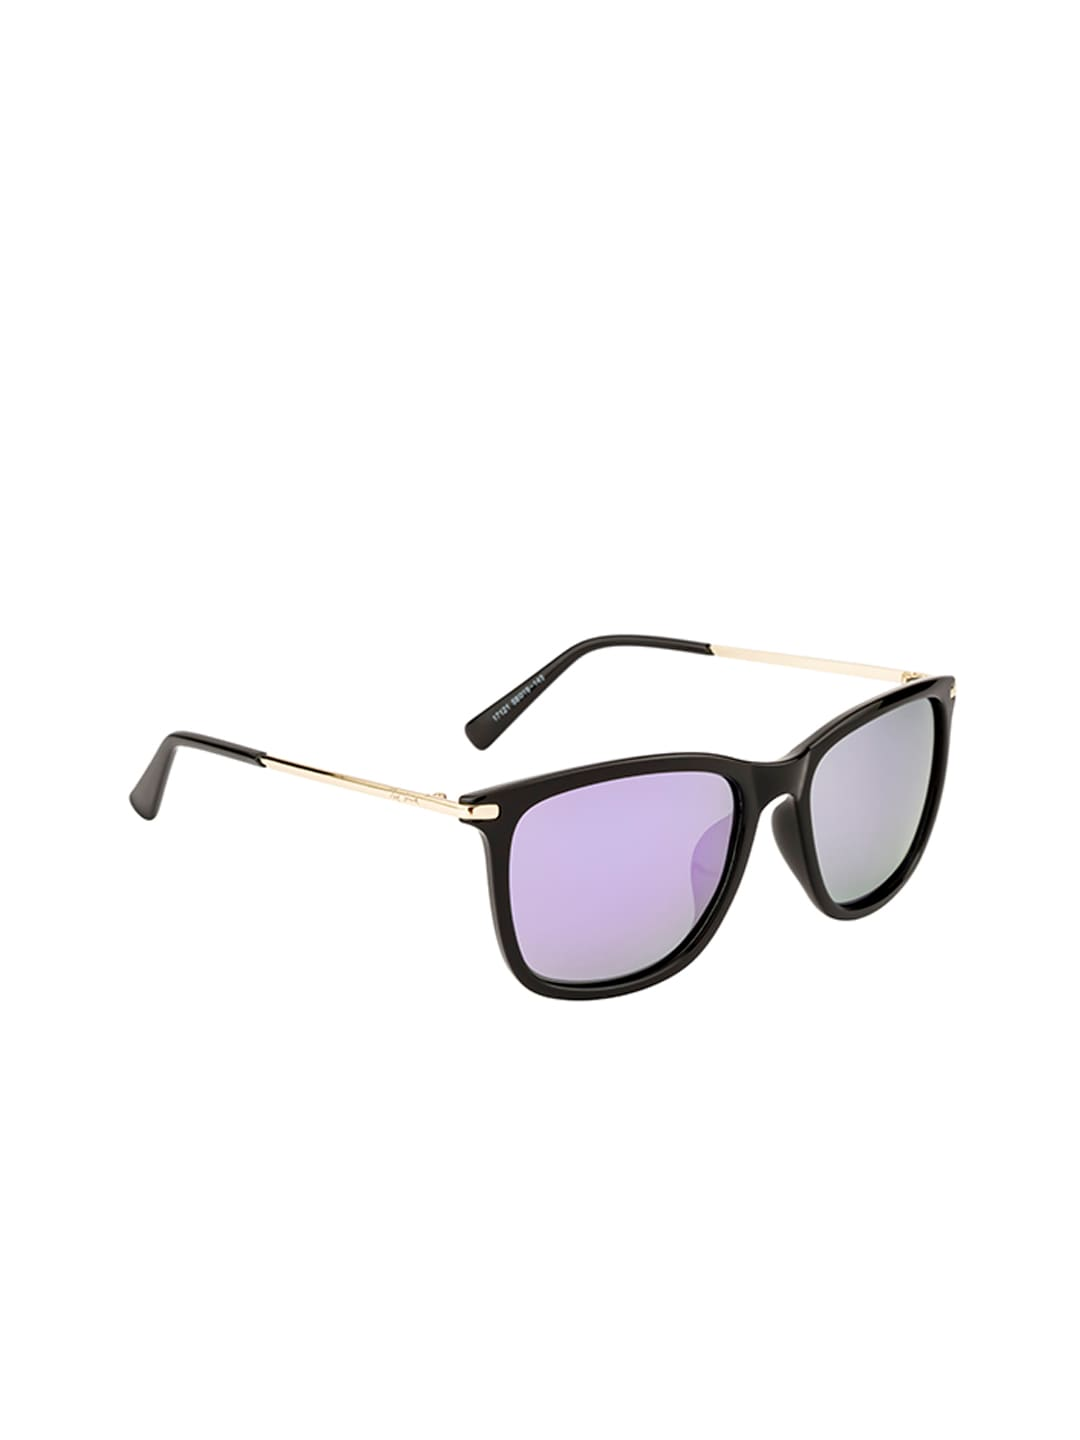 004c4600efd8e Women s Eyewear - Buy Eyewear for Women Online in India